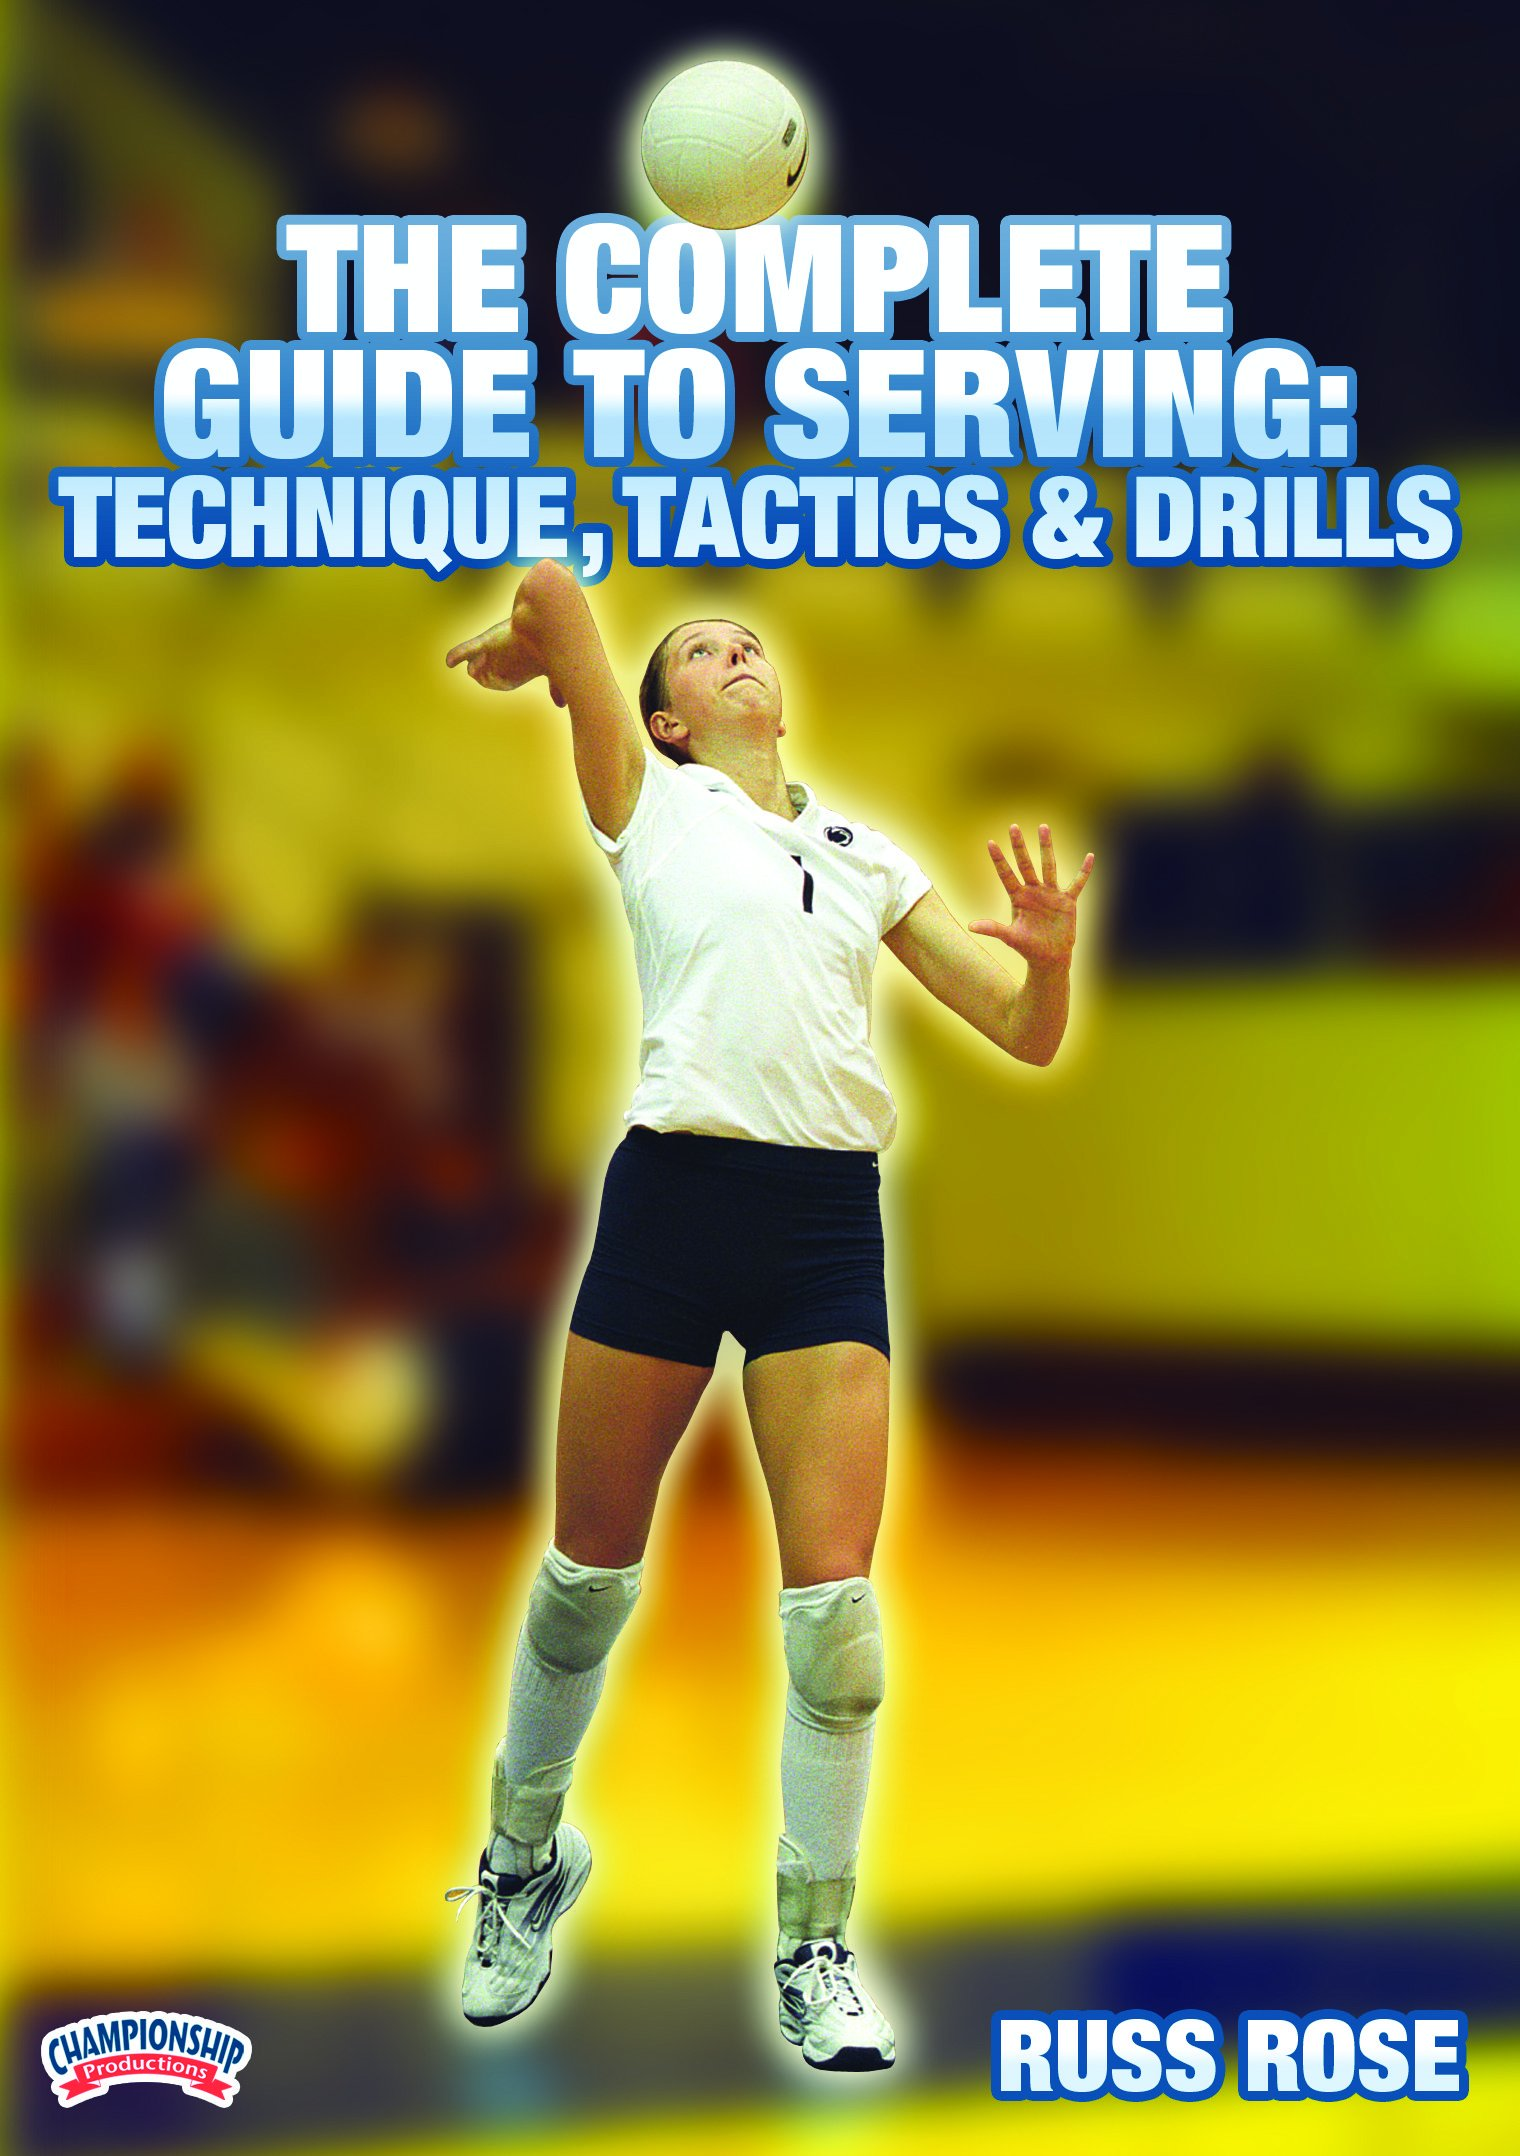 Russ Rose: The Complete Guide to Serving: Technique, Tactics & Drills (DVD)